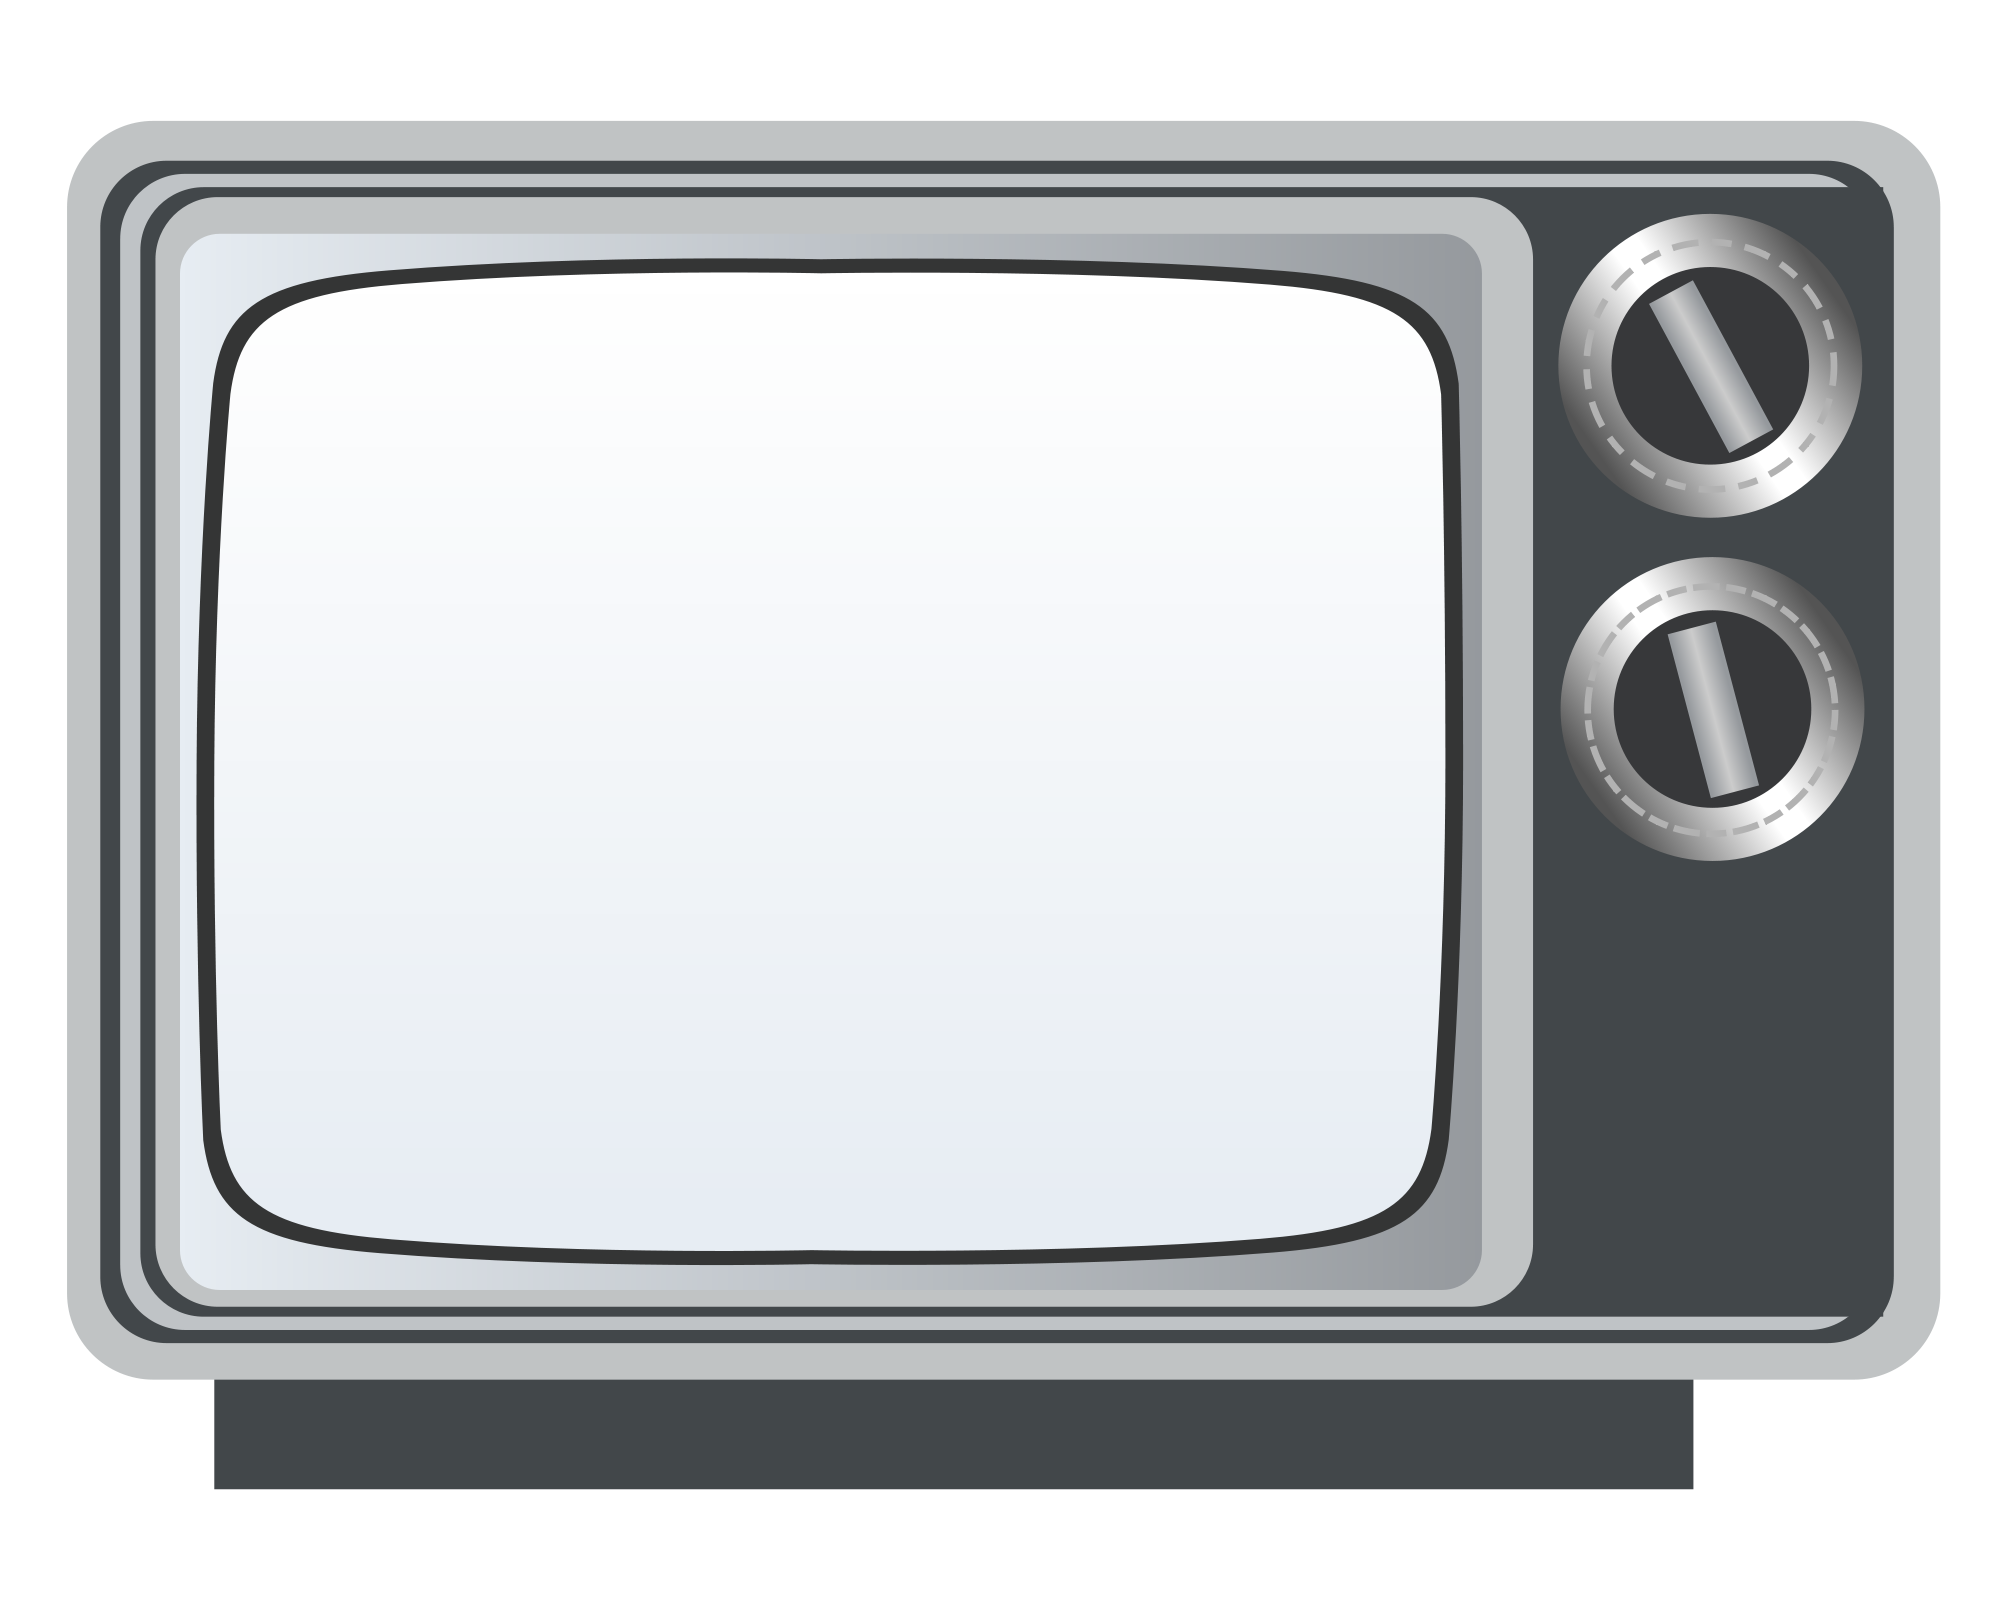 Clipart tv new one. Pin by hopeless on